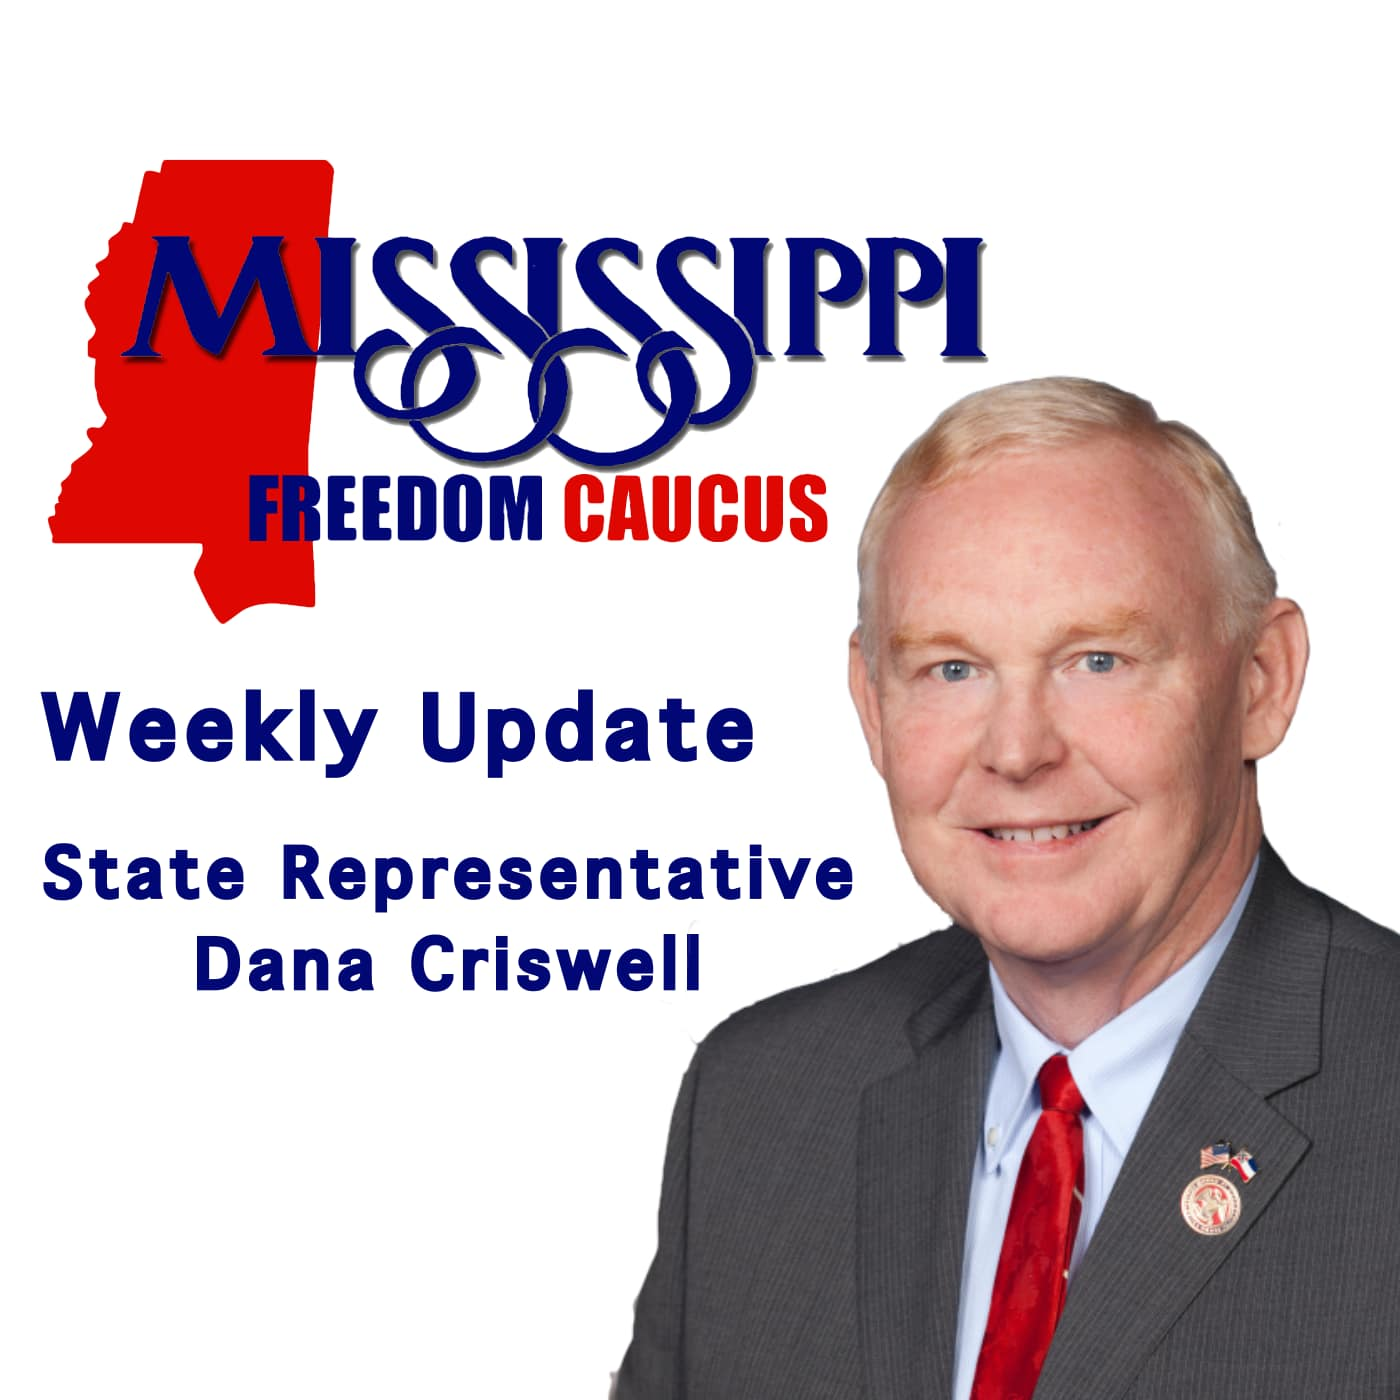 Mississippi Freedom Caucus - Weekly Update